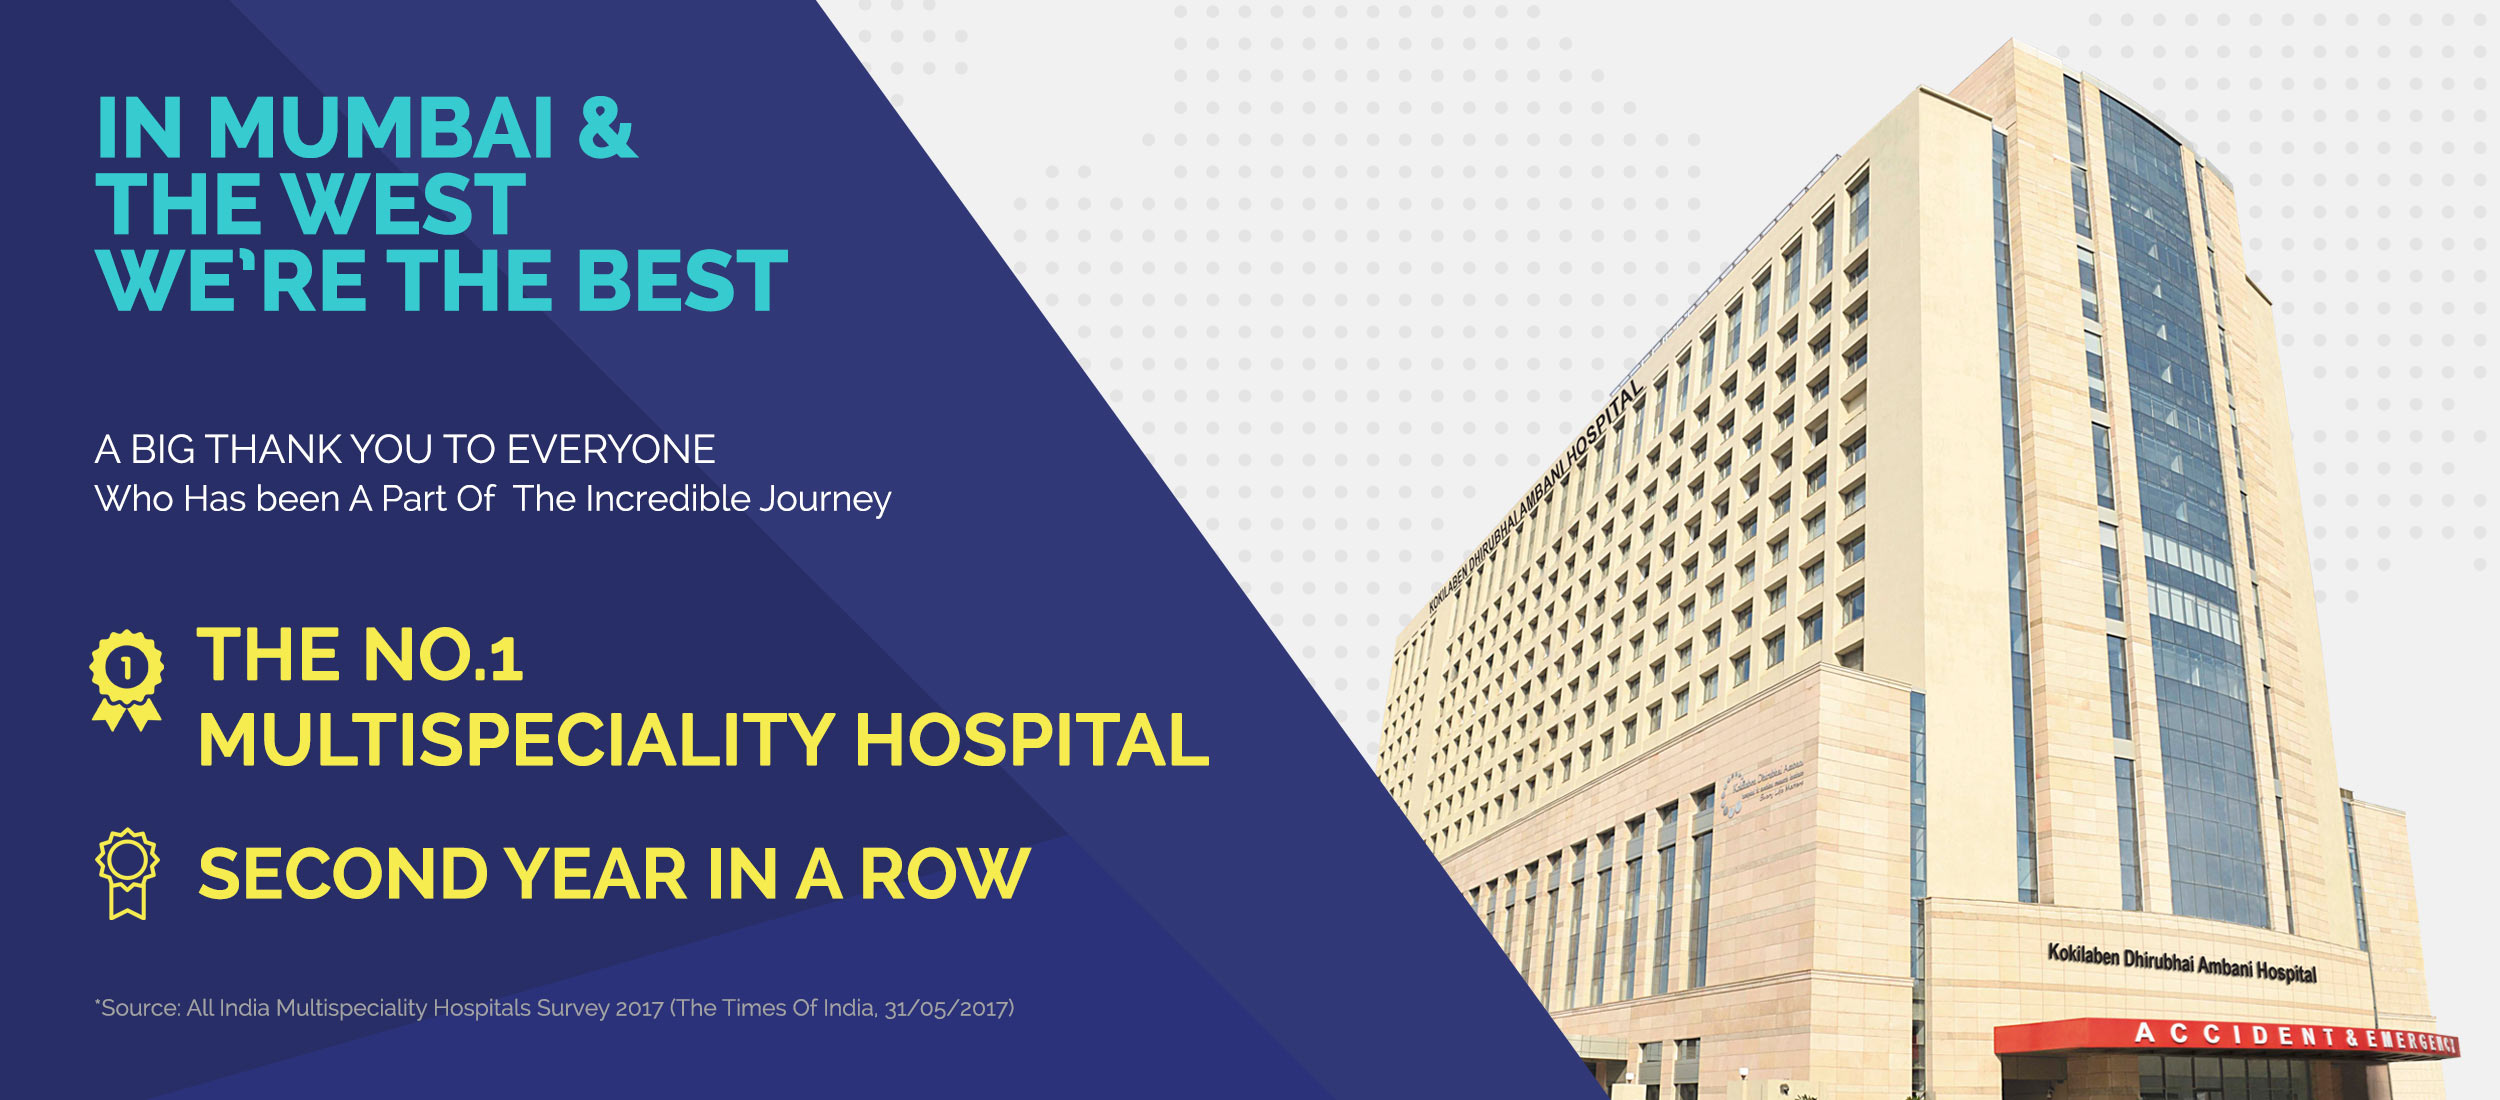 The Number 1 Hospital in Mumbai and Western India